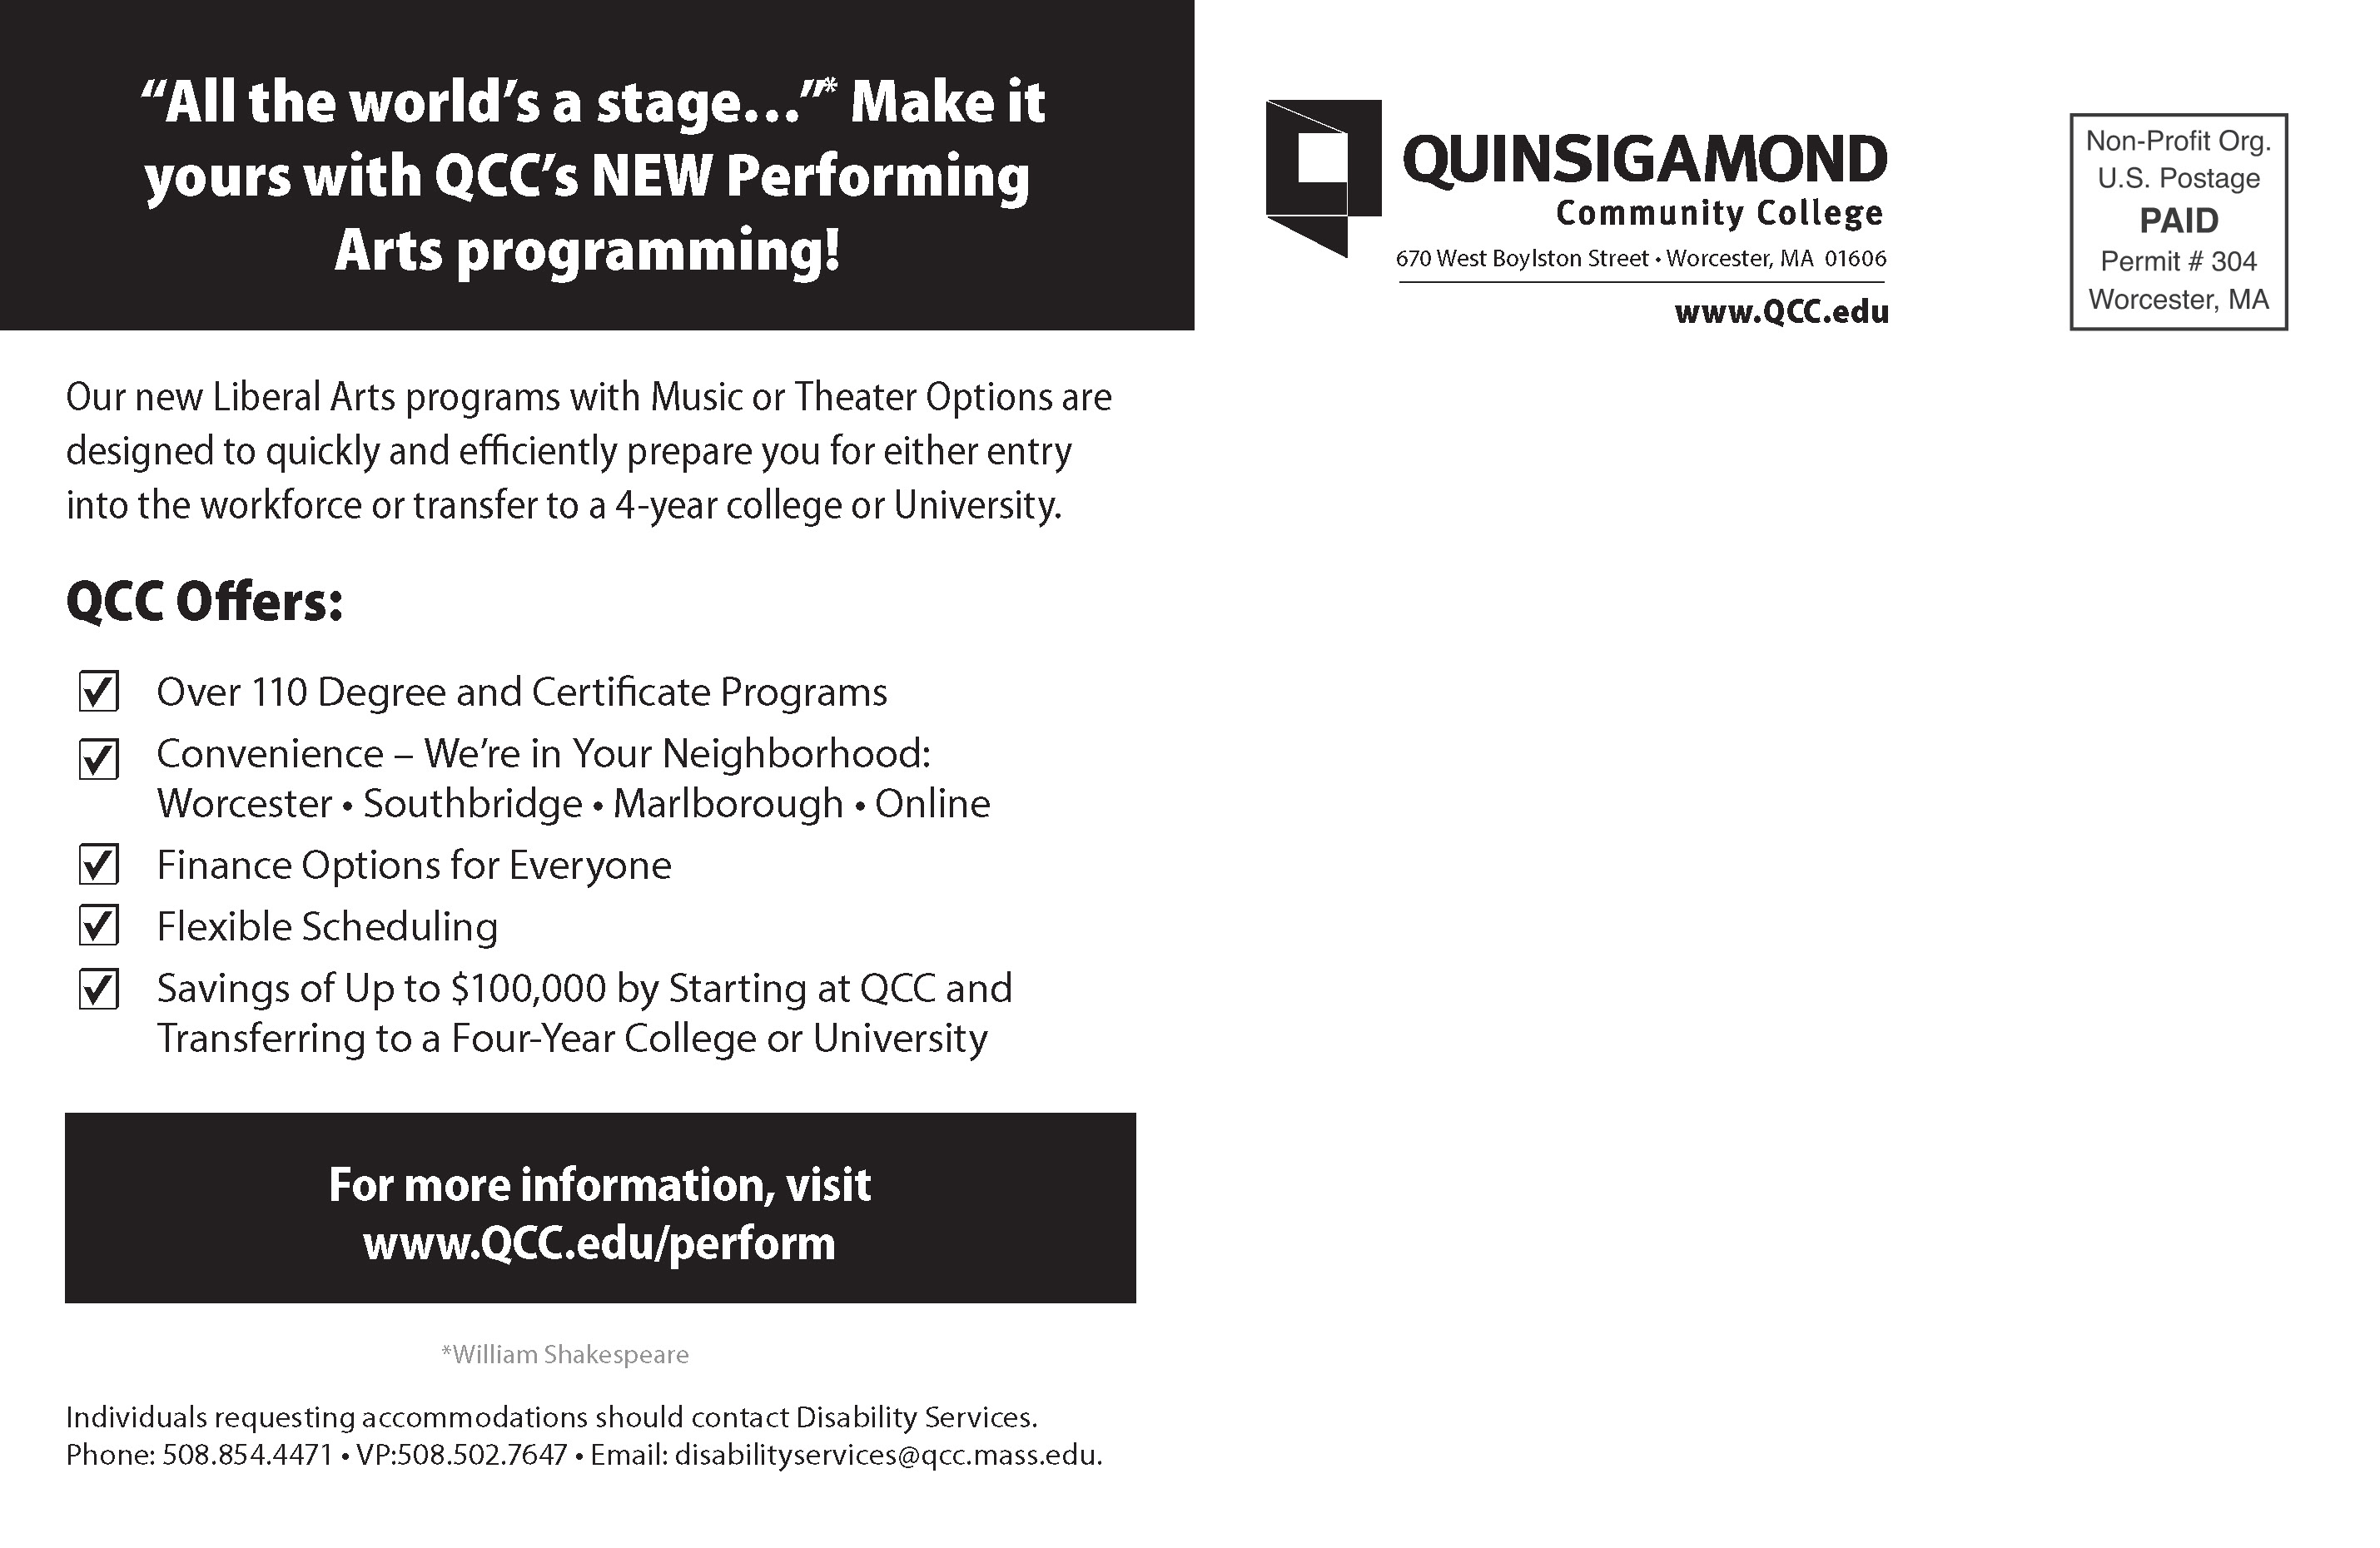 Marketing collateral page 4 quinsigamond community college qcc performing arts postcard performing arts postcard 1betcityfo Images